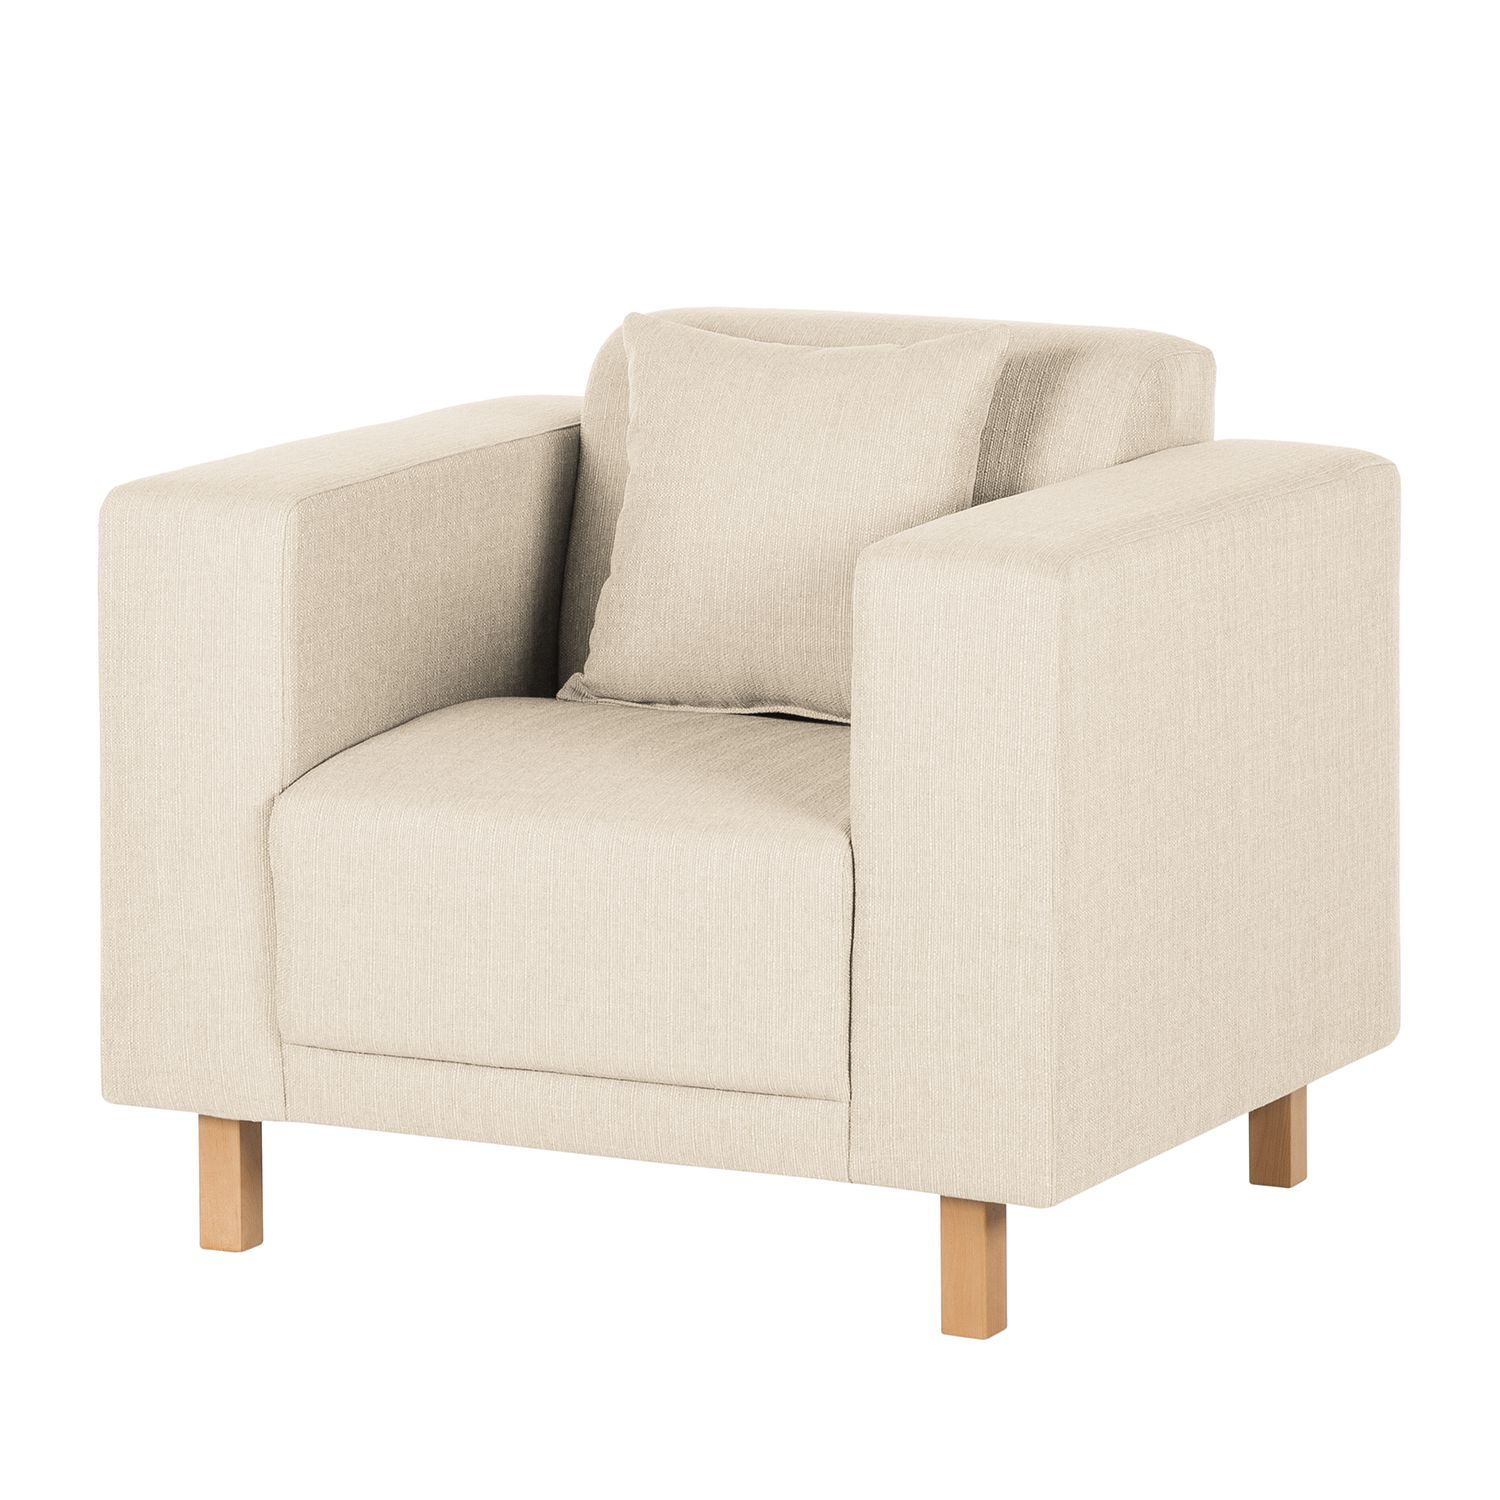 Fauteuil KiYDOO relax - Tissu - Crème, mooved